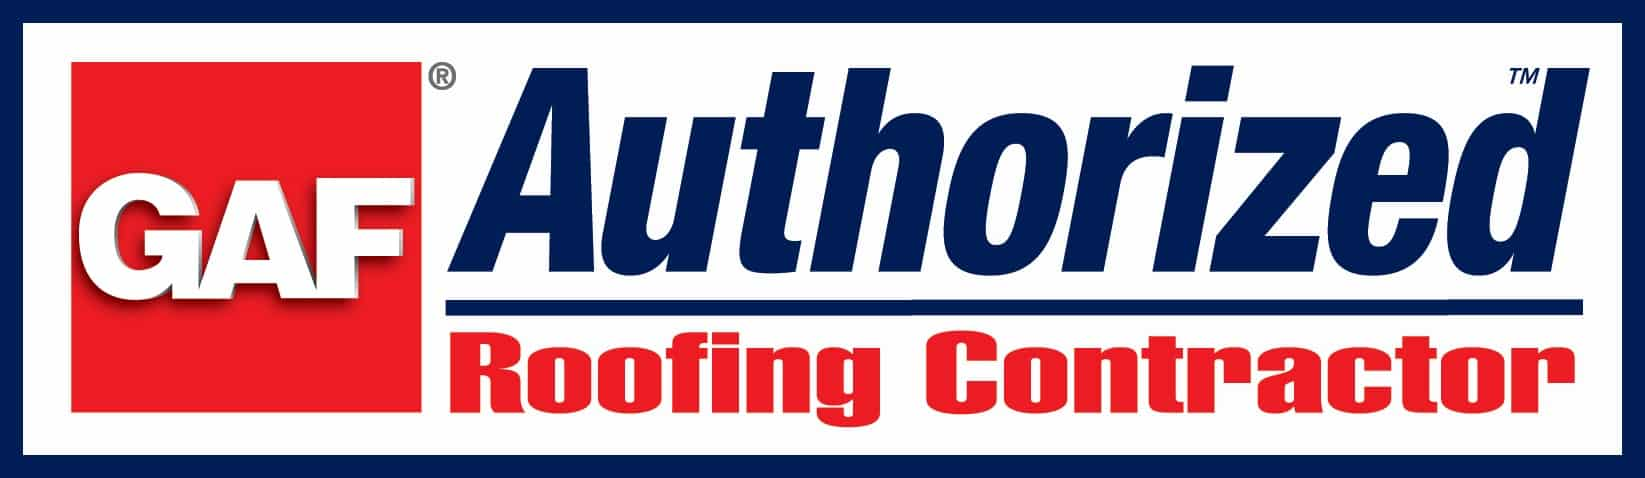 Bandera Roofing Contractor-ARP Roofing & Remodeling 7